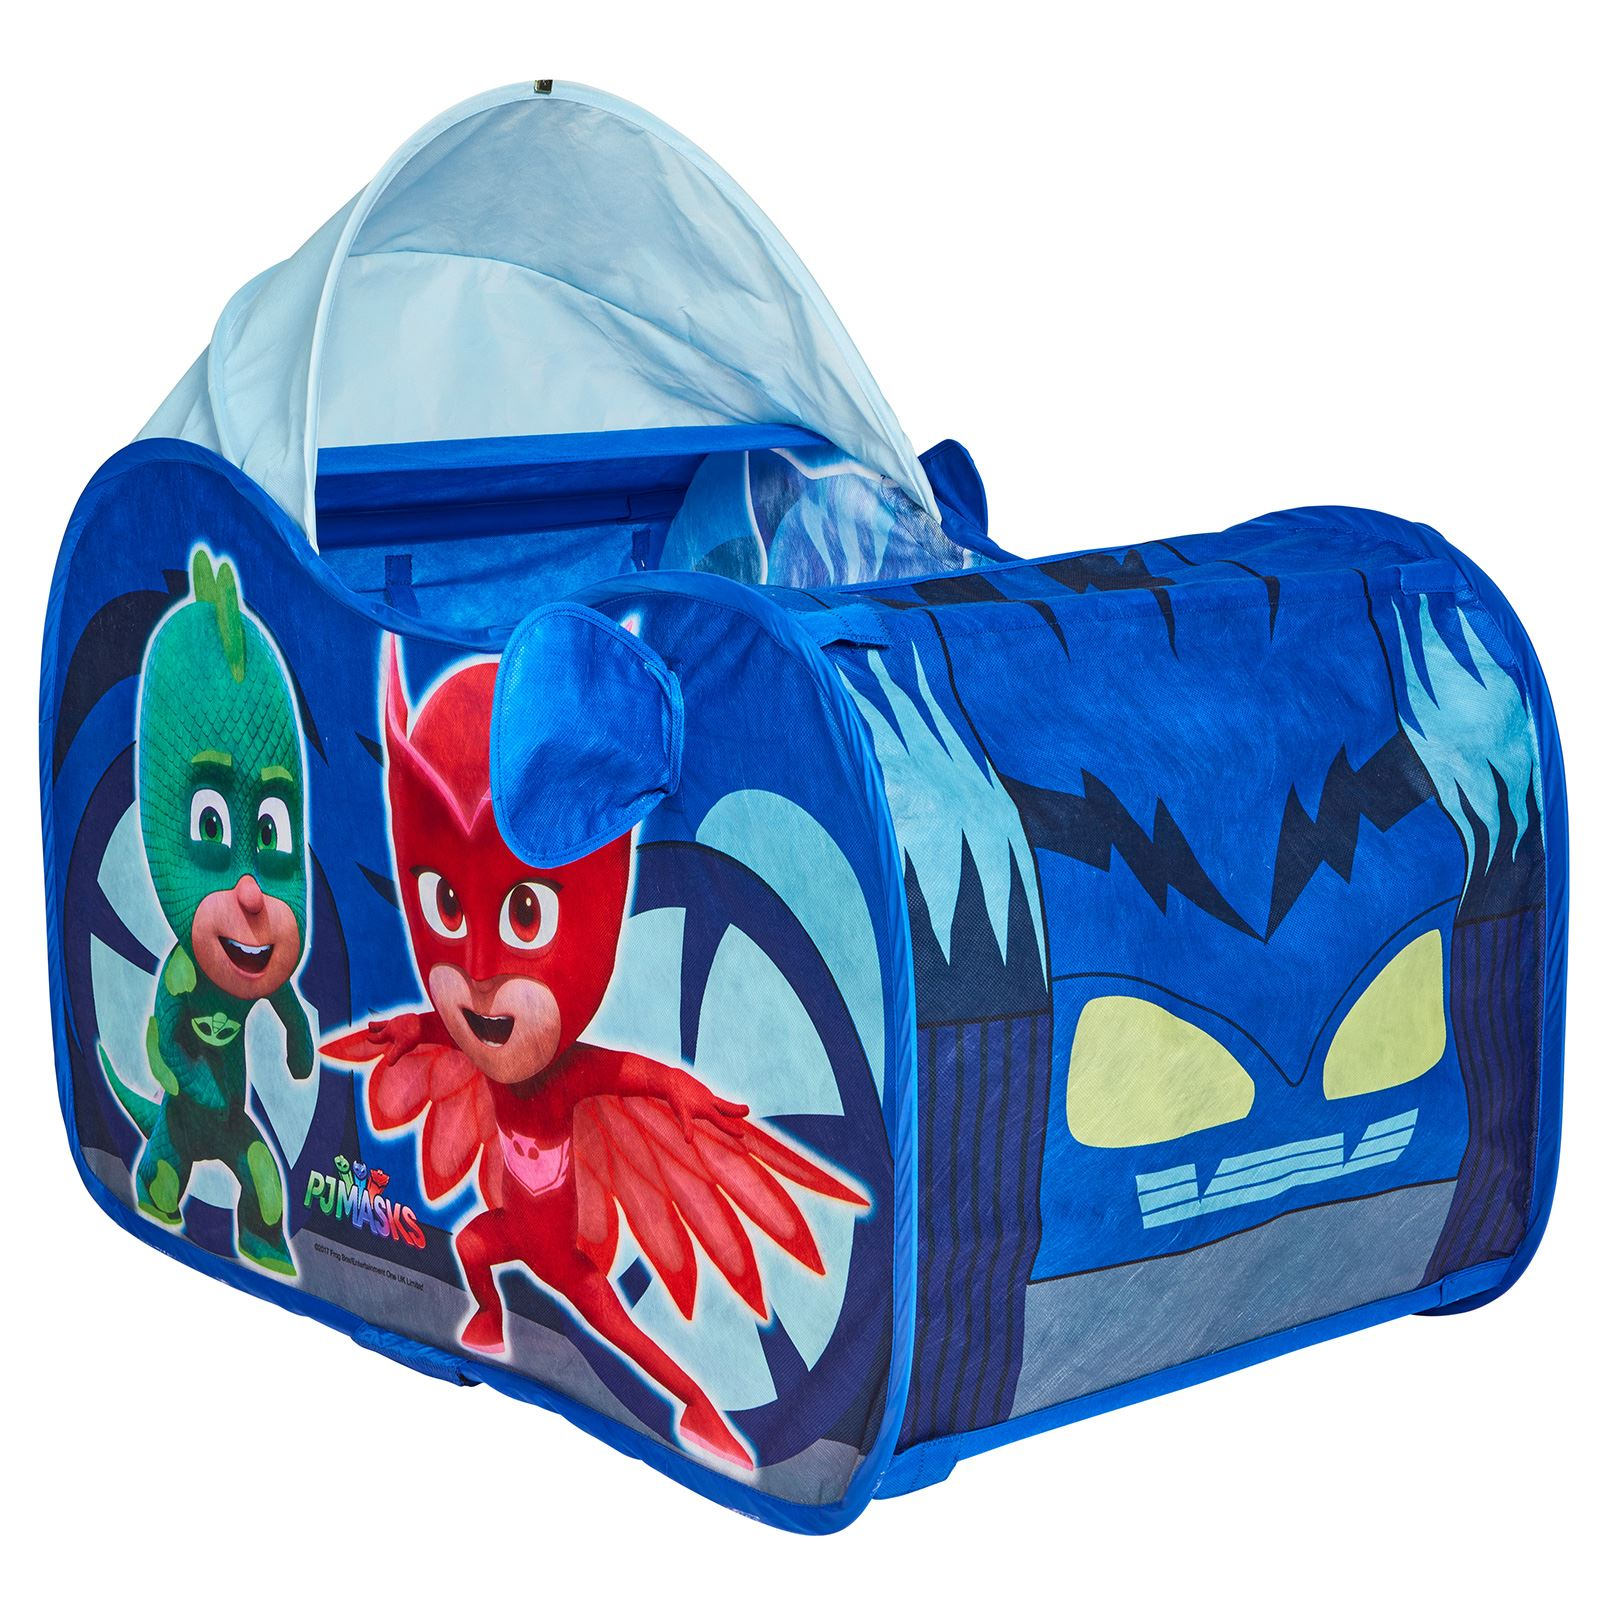 PJ MASKS CATBOY CAR PLAY TENT CHILDRENS FUN INDOOR OUTDOOR PLAY TENT NEW  sc 1 st  eBay : car play tent - memphite.com